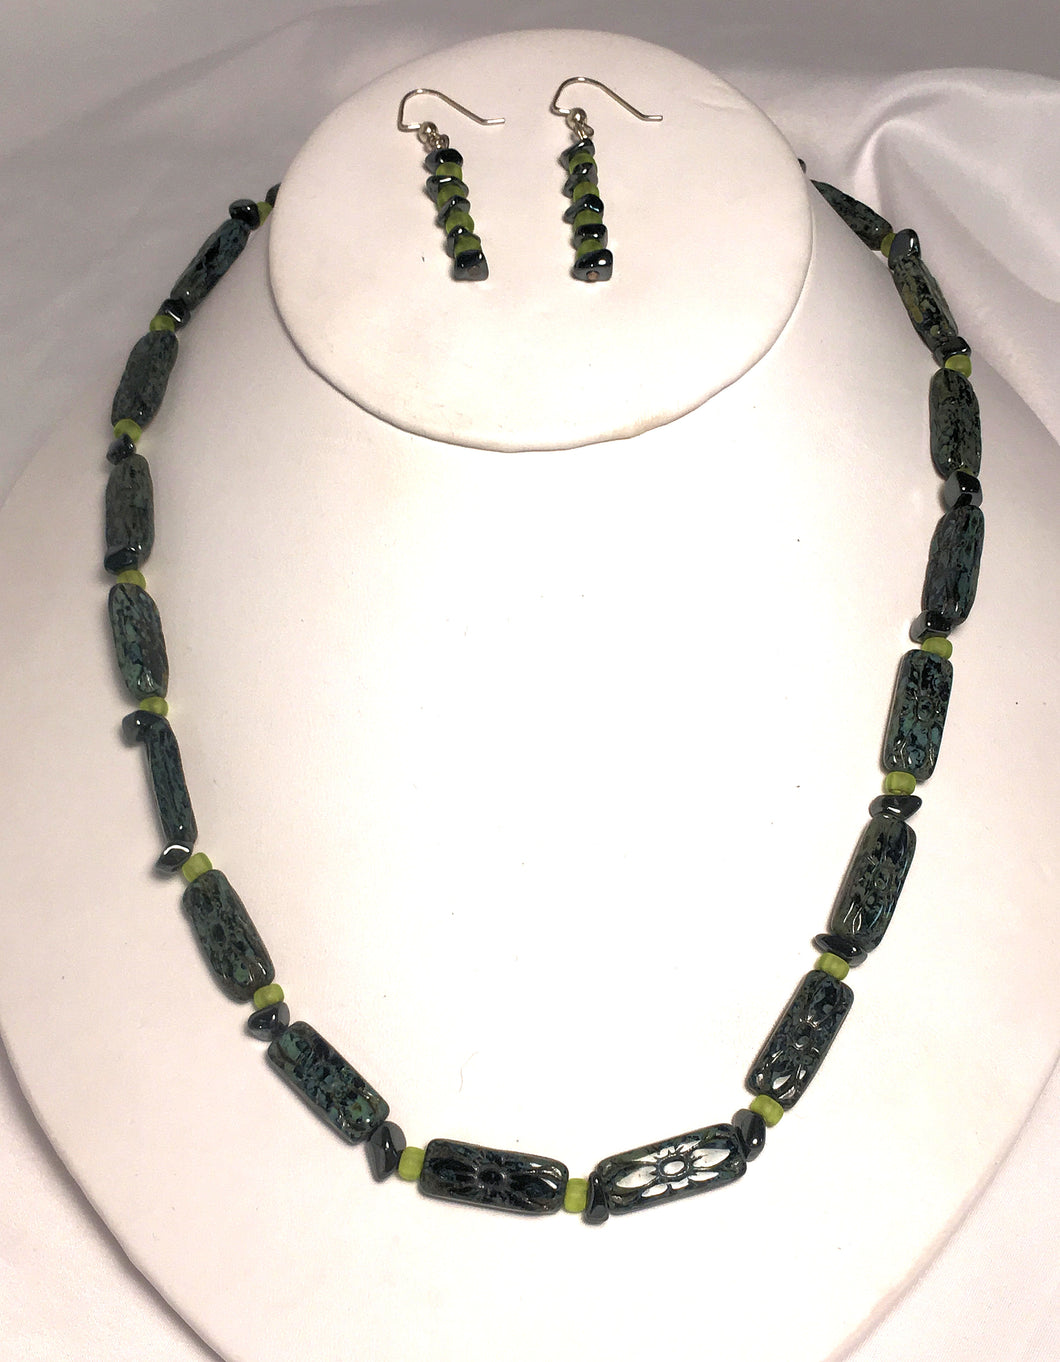 Czech Black/Green Pressed Flower Beads and Hematite Chip Necklace and Earring Set